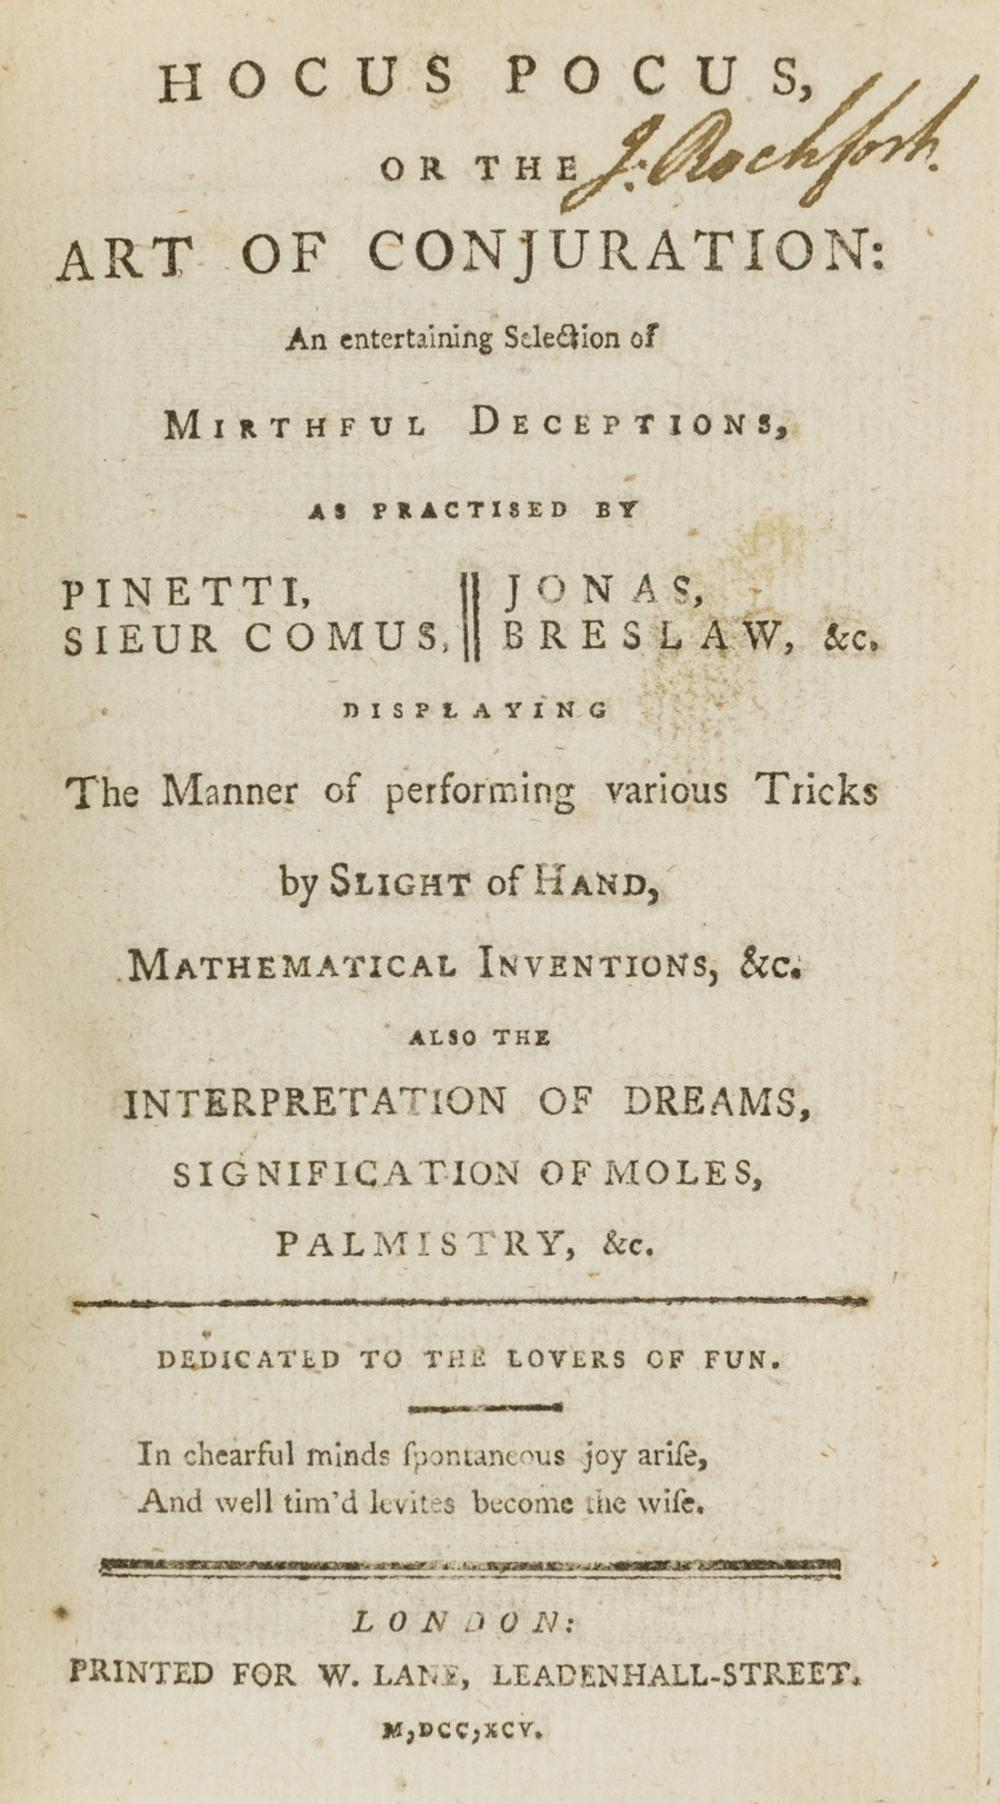 Conjuring.- Hocus Pocus, or the Art of Conjuration..., W.Lane, 1795.